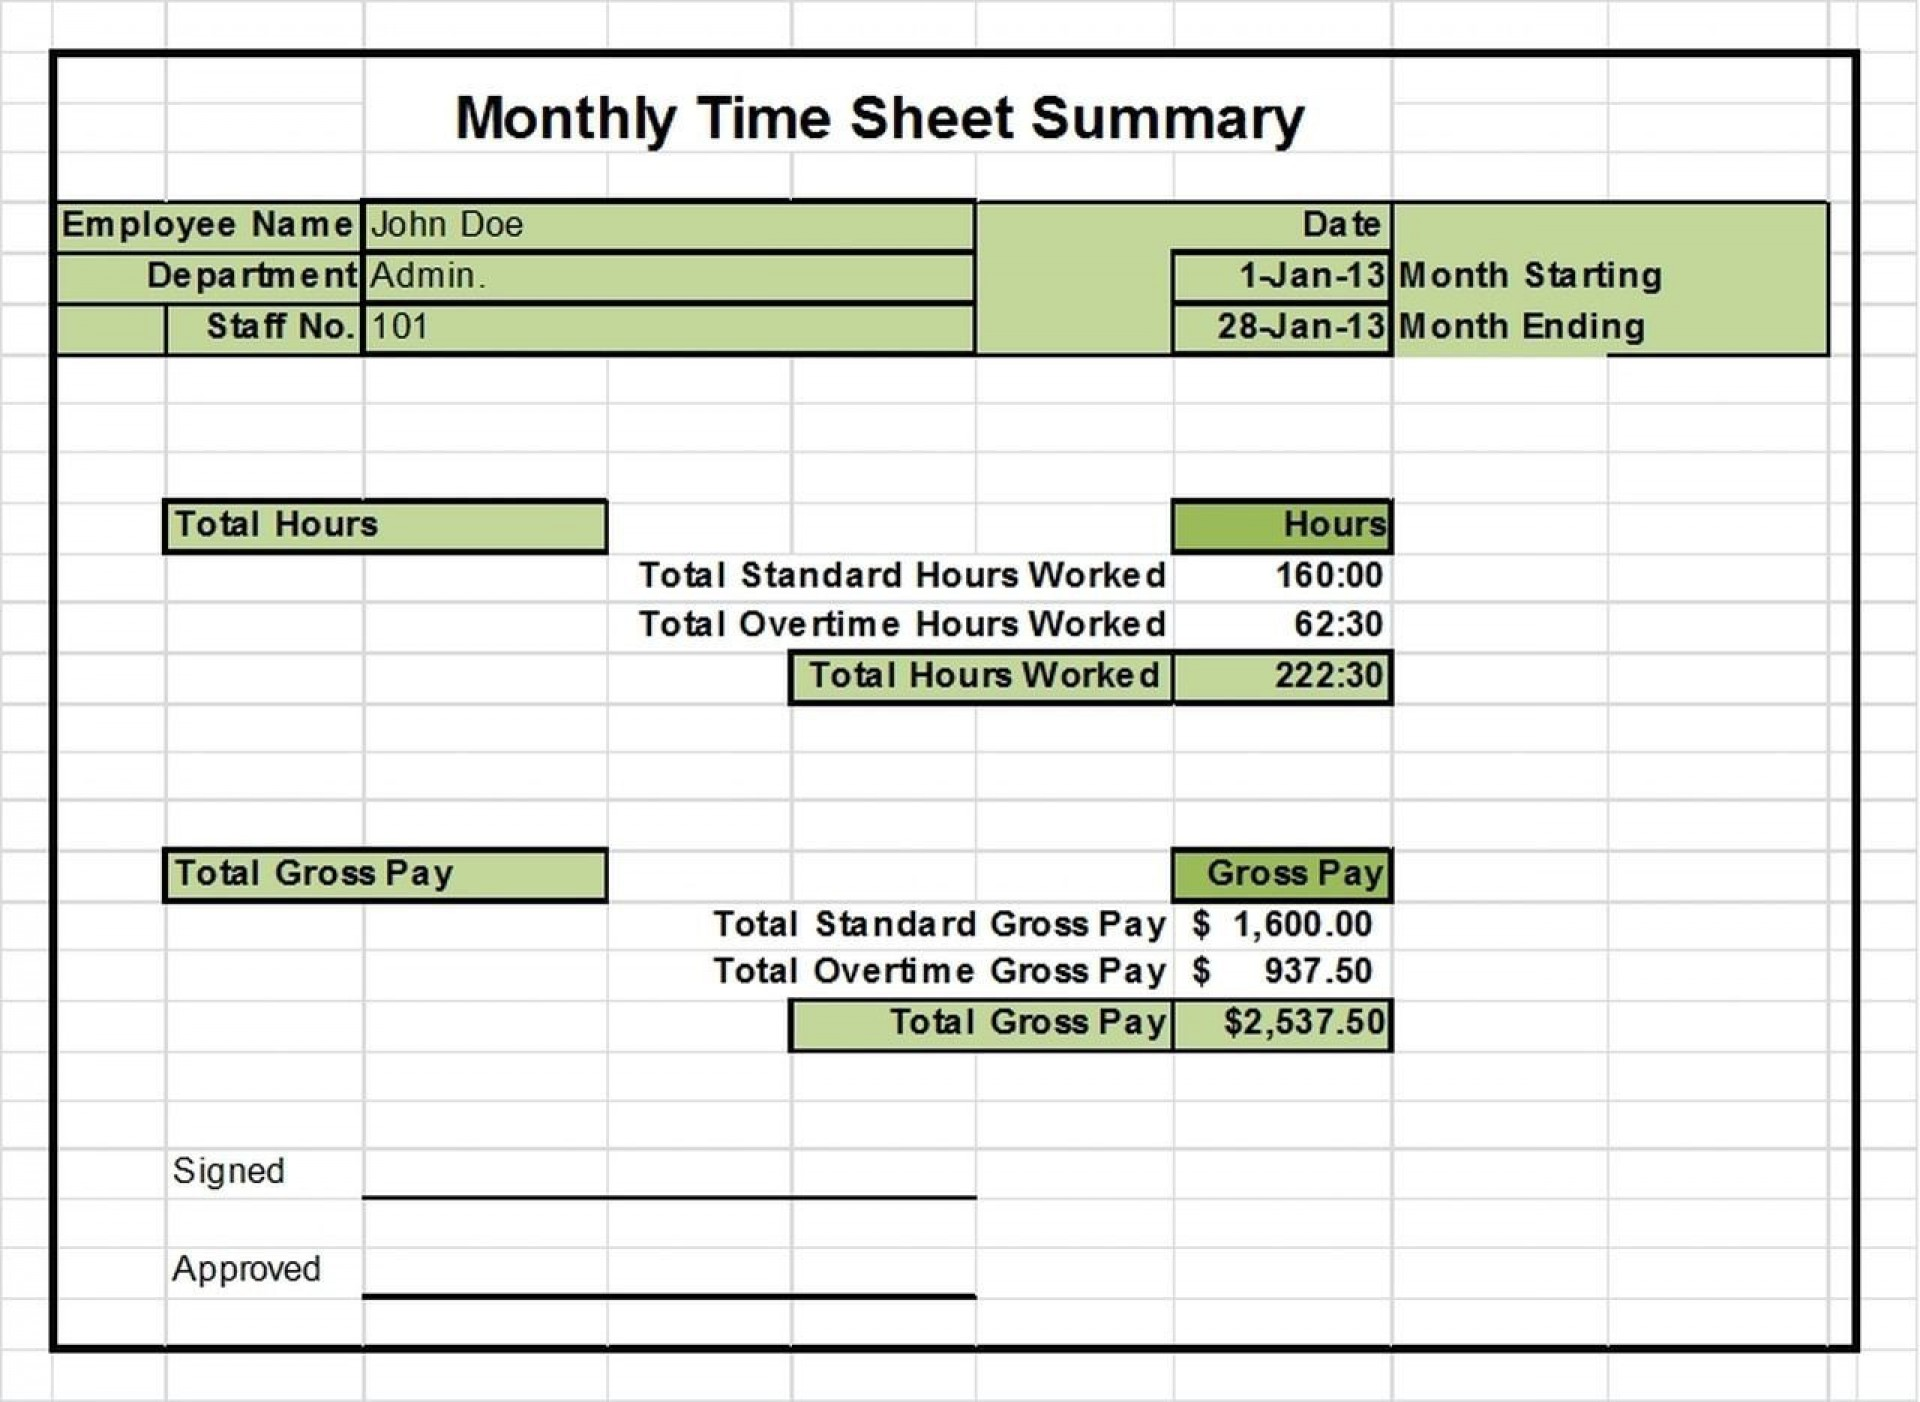 002 Shocking Monthly Timesheet Excel Template Design  Multiple Employee Free Semi-monthly 20201920